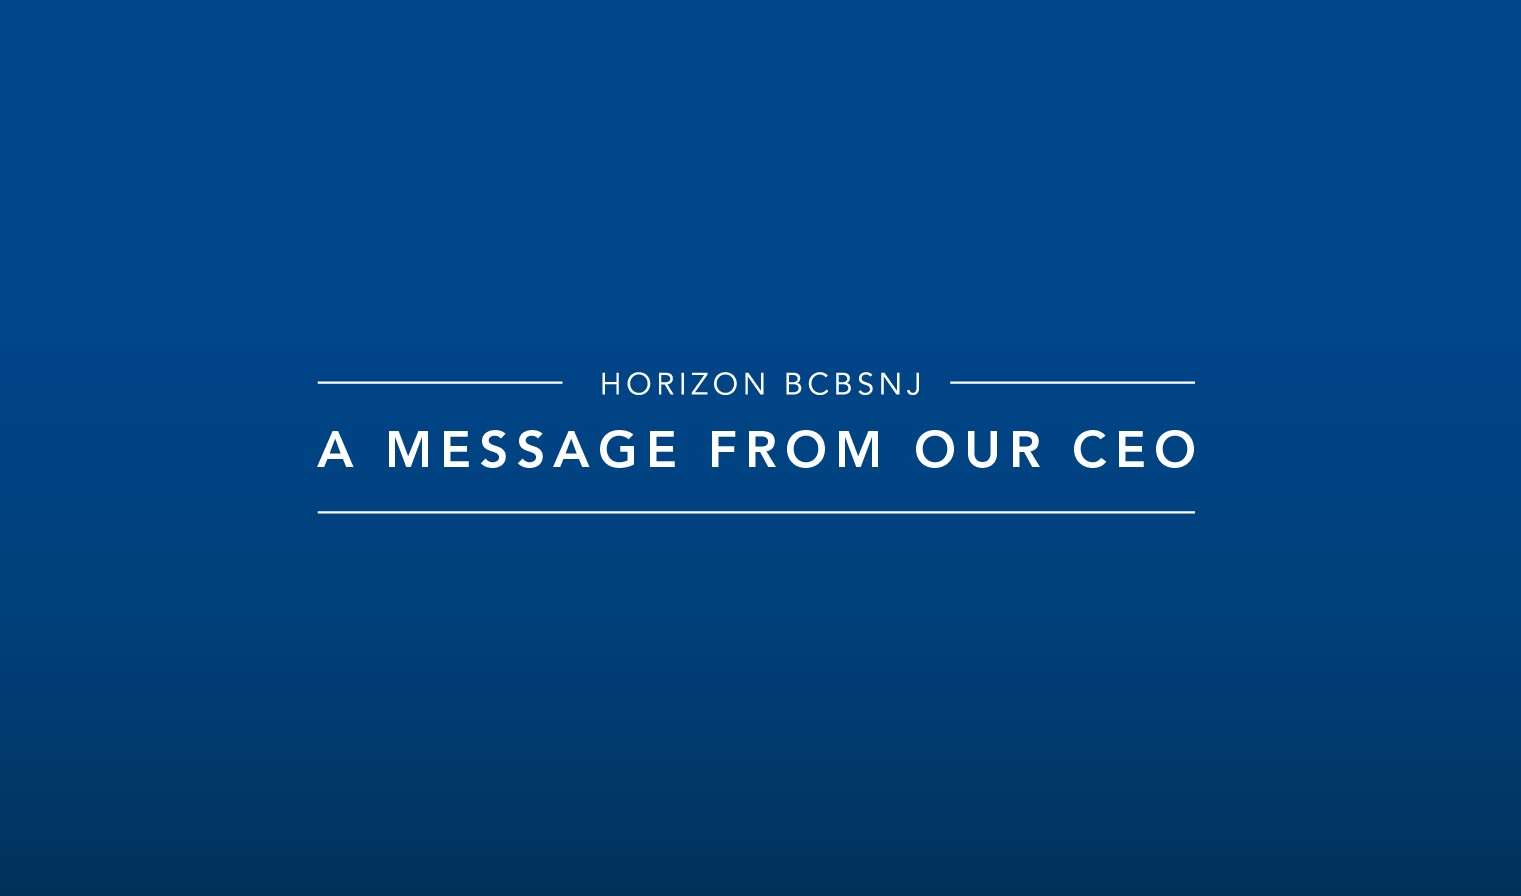 A Message from the CEO HBCBSNJ